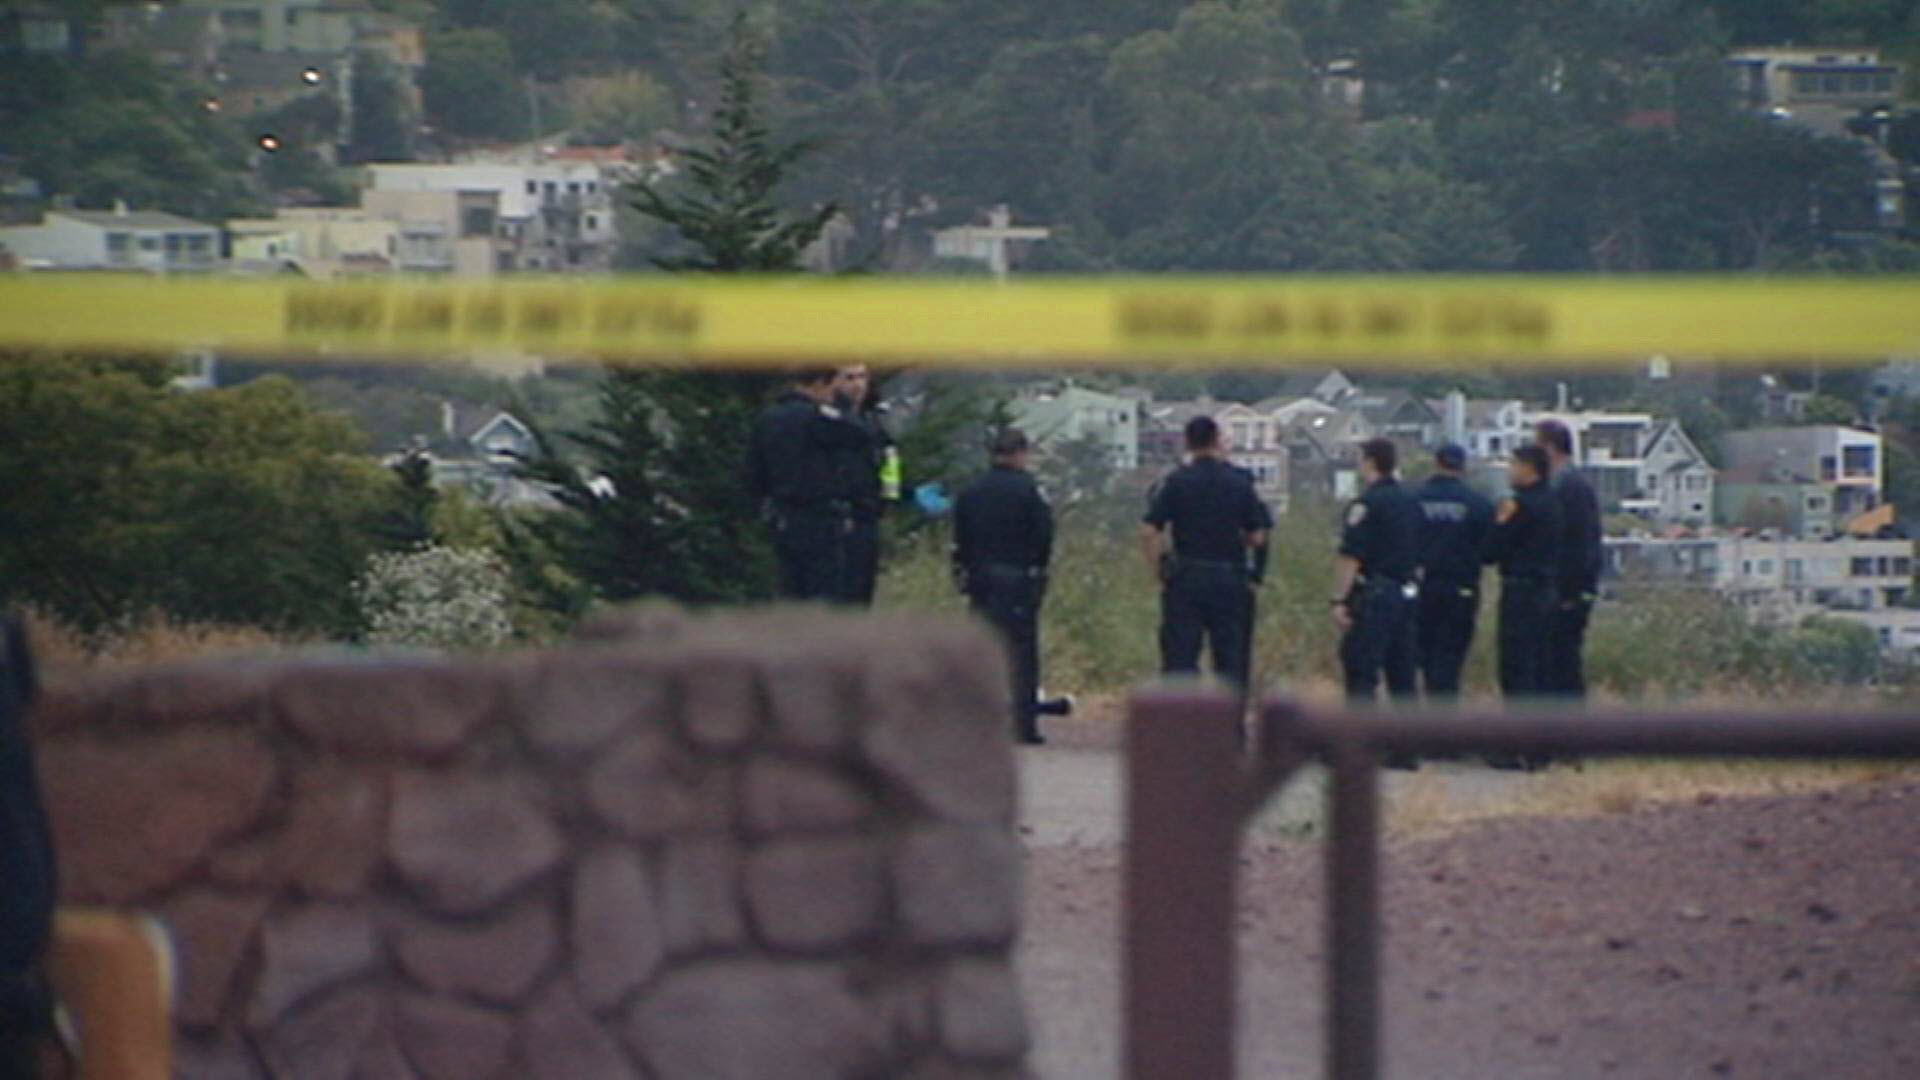 Man Found Stabbed to Death in SF's Bernal Heights Park: PD